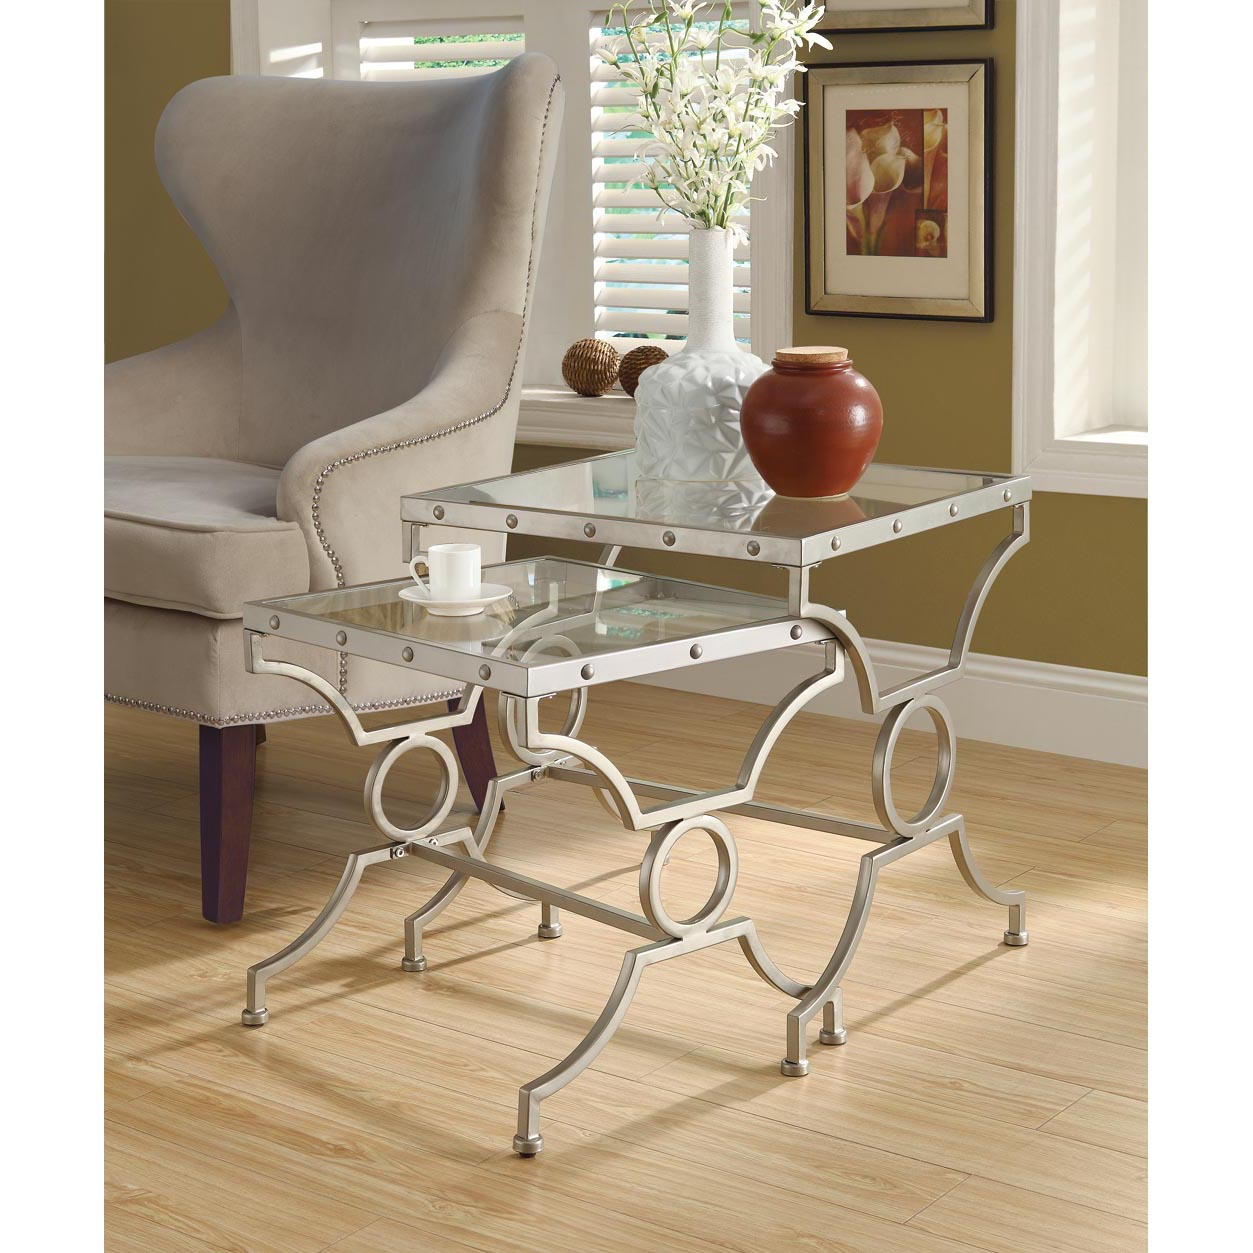 Satin Silver 2-piece Nesting Table Set with Tempered Glass